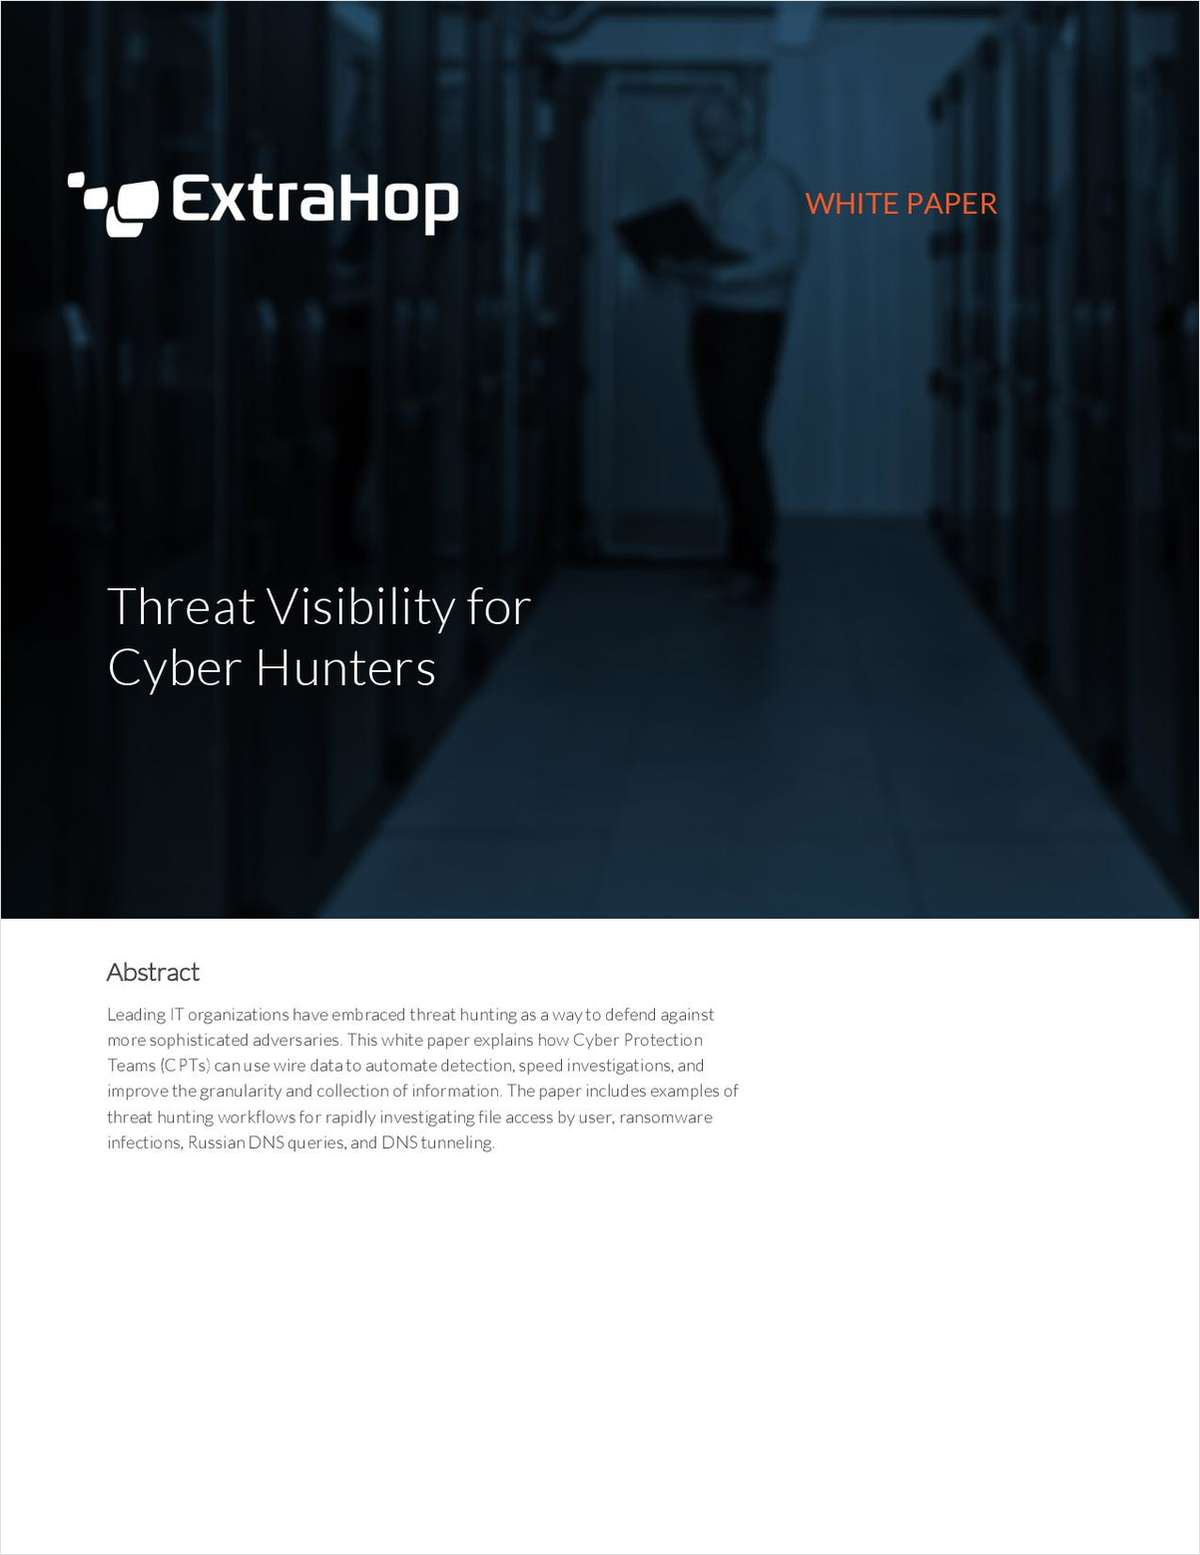 Threat Visibility for Cyber Hunters